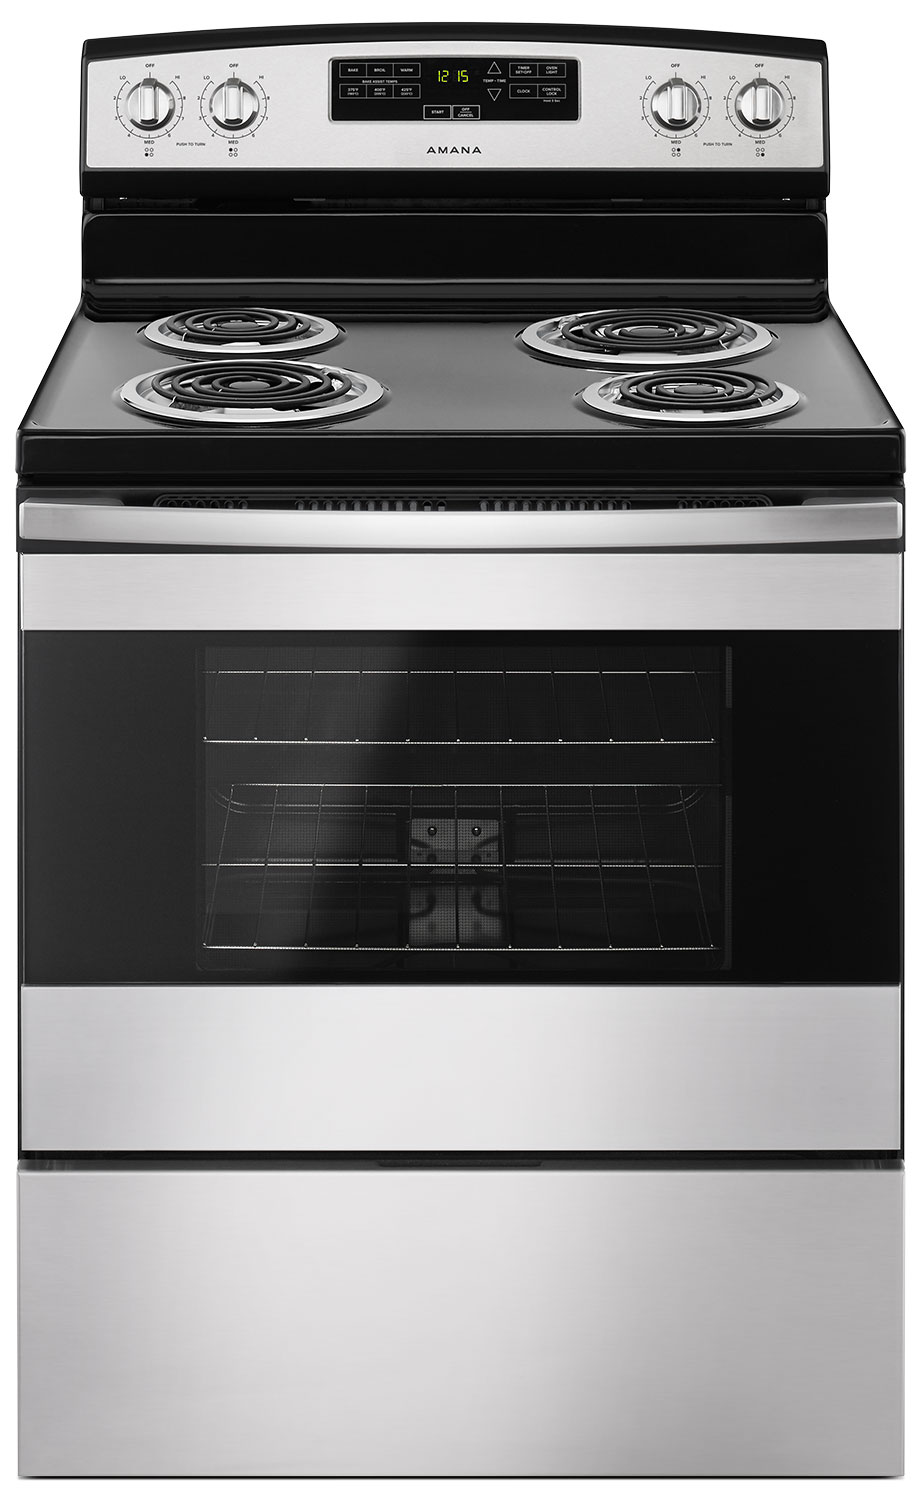 Amana 4.8 Cu. Ft. Freestanding Electric Range – YACR4303MFS